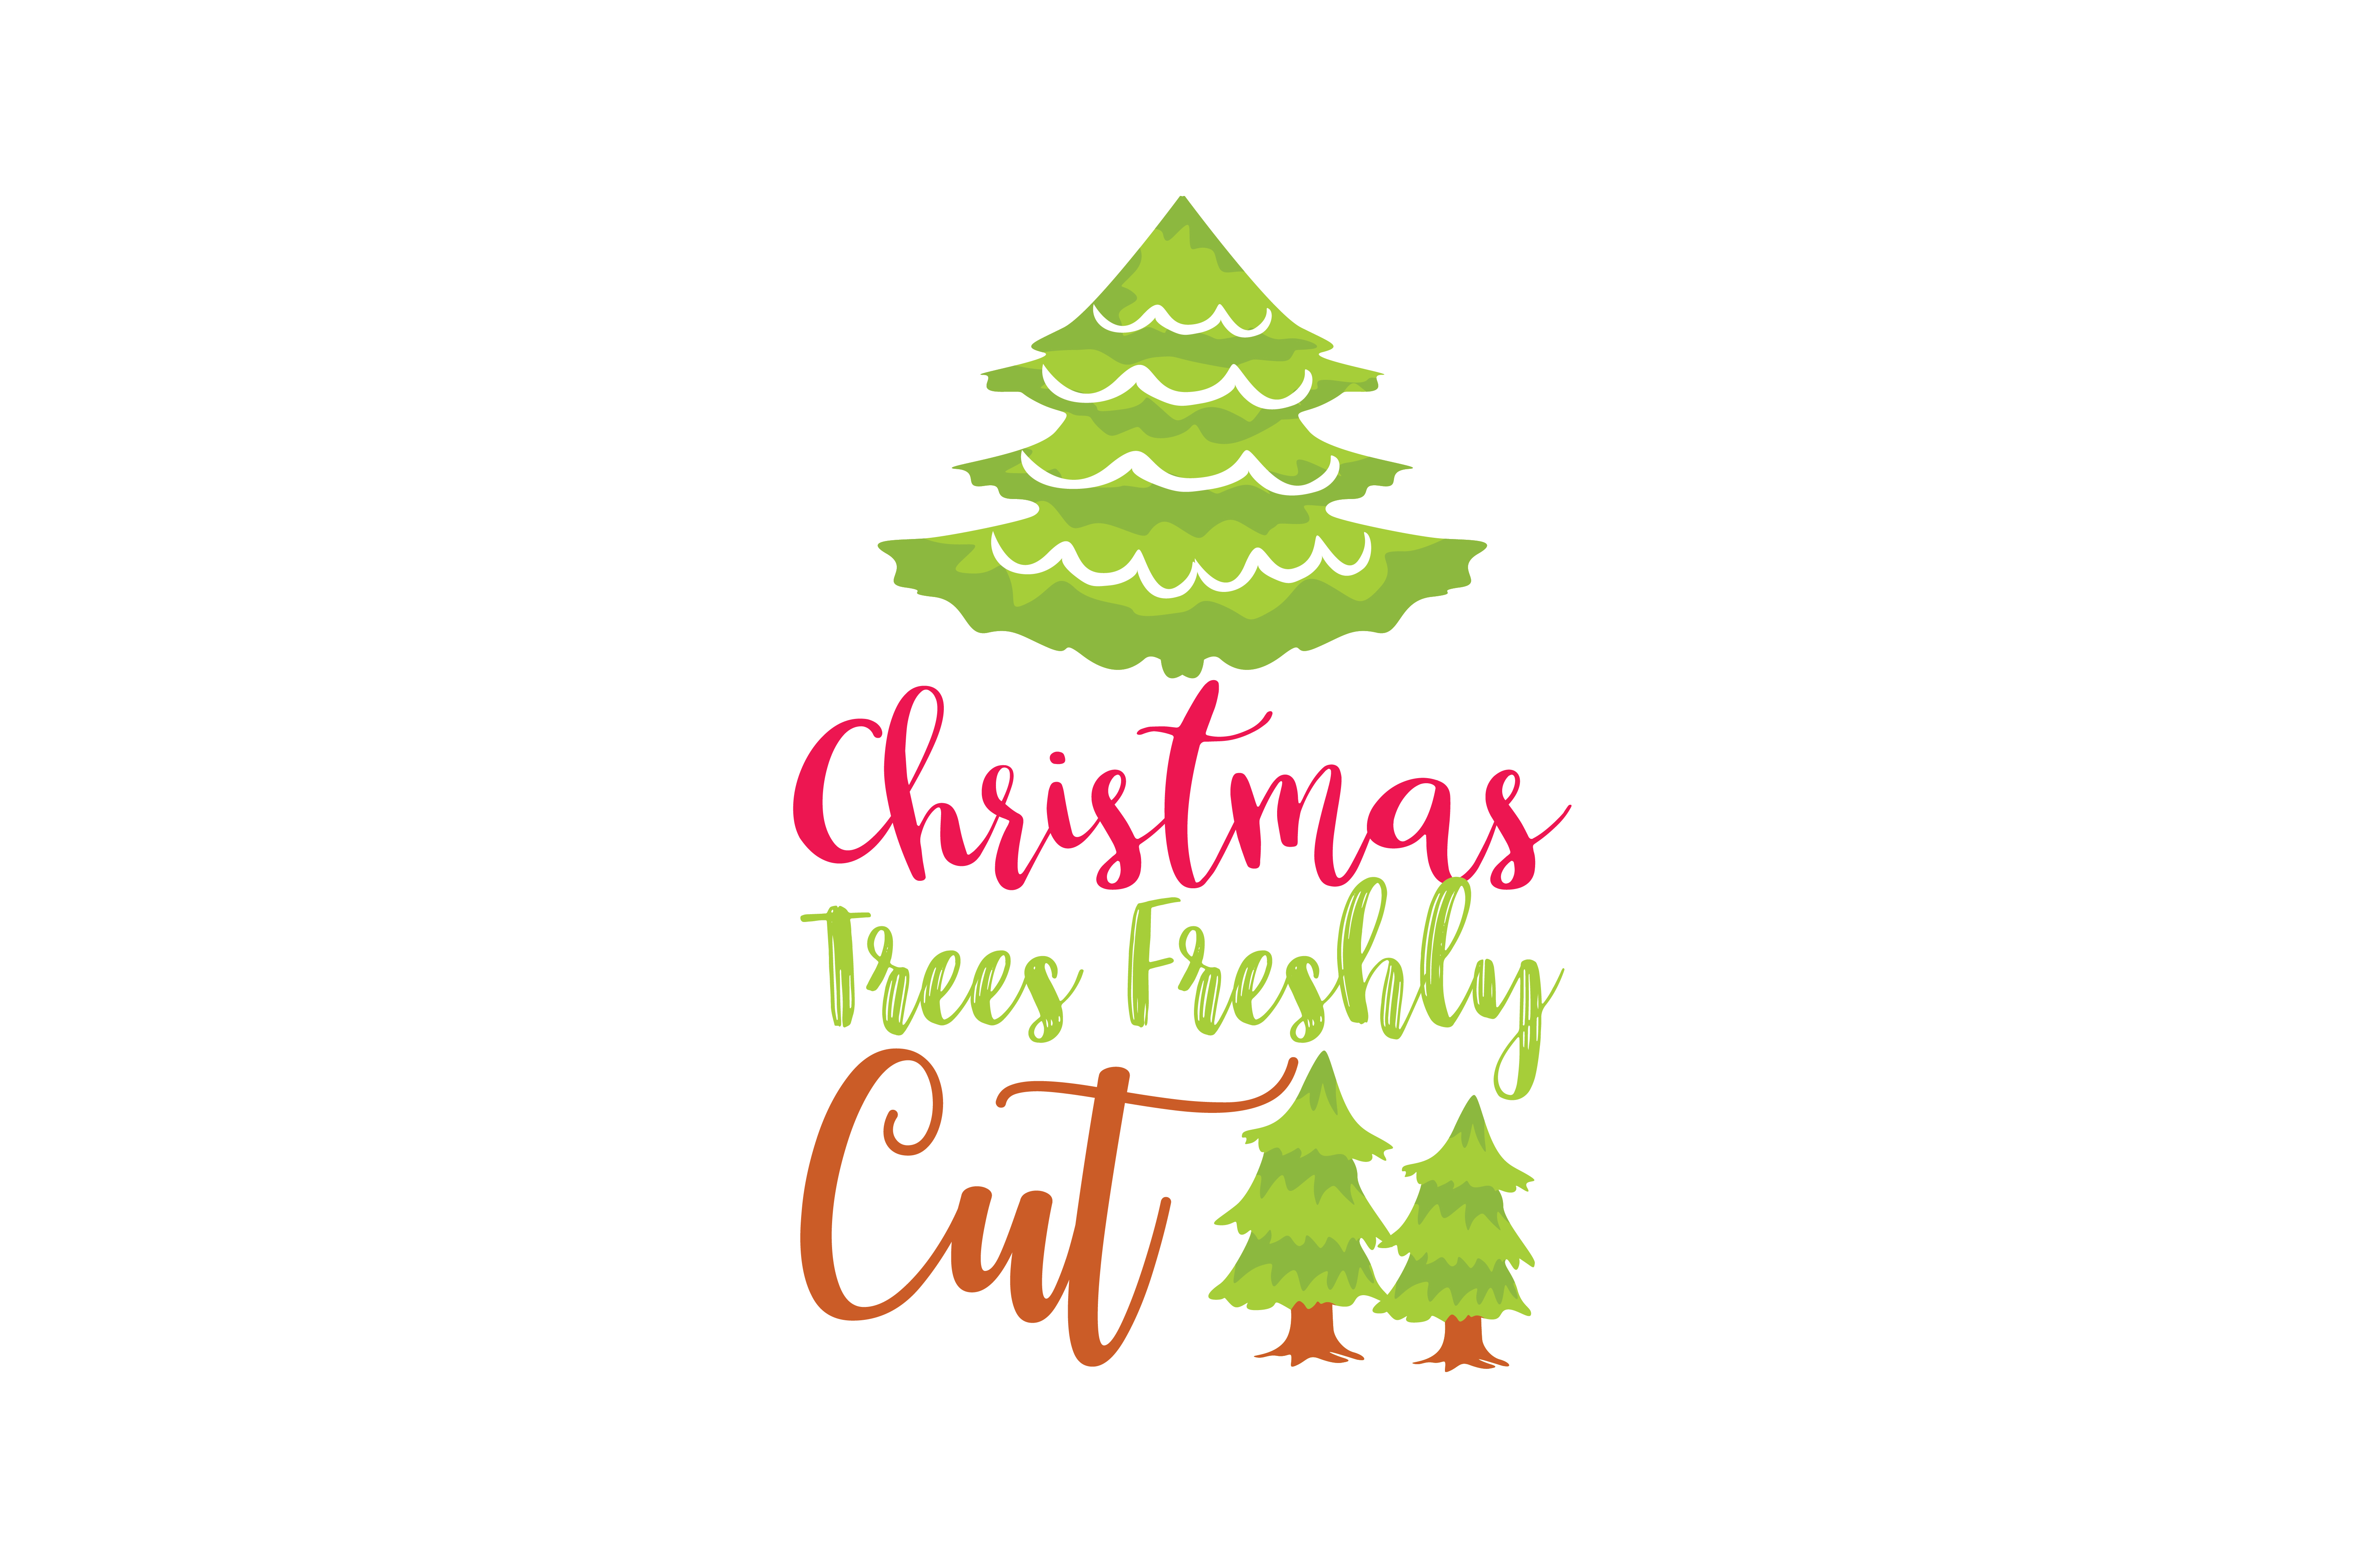 Download Free Christmas Trees Freshly Cut Graphic By Thelucky Creative Fabrica for Cricut Explore, Silhouette and other cutting machines.